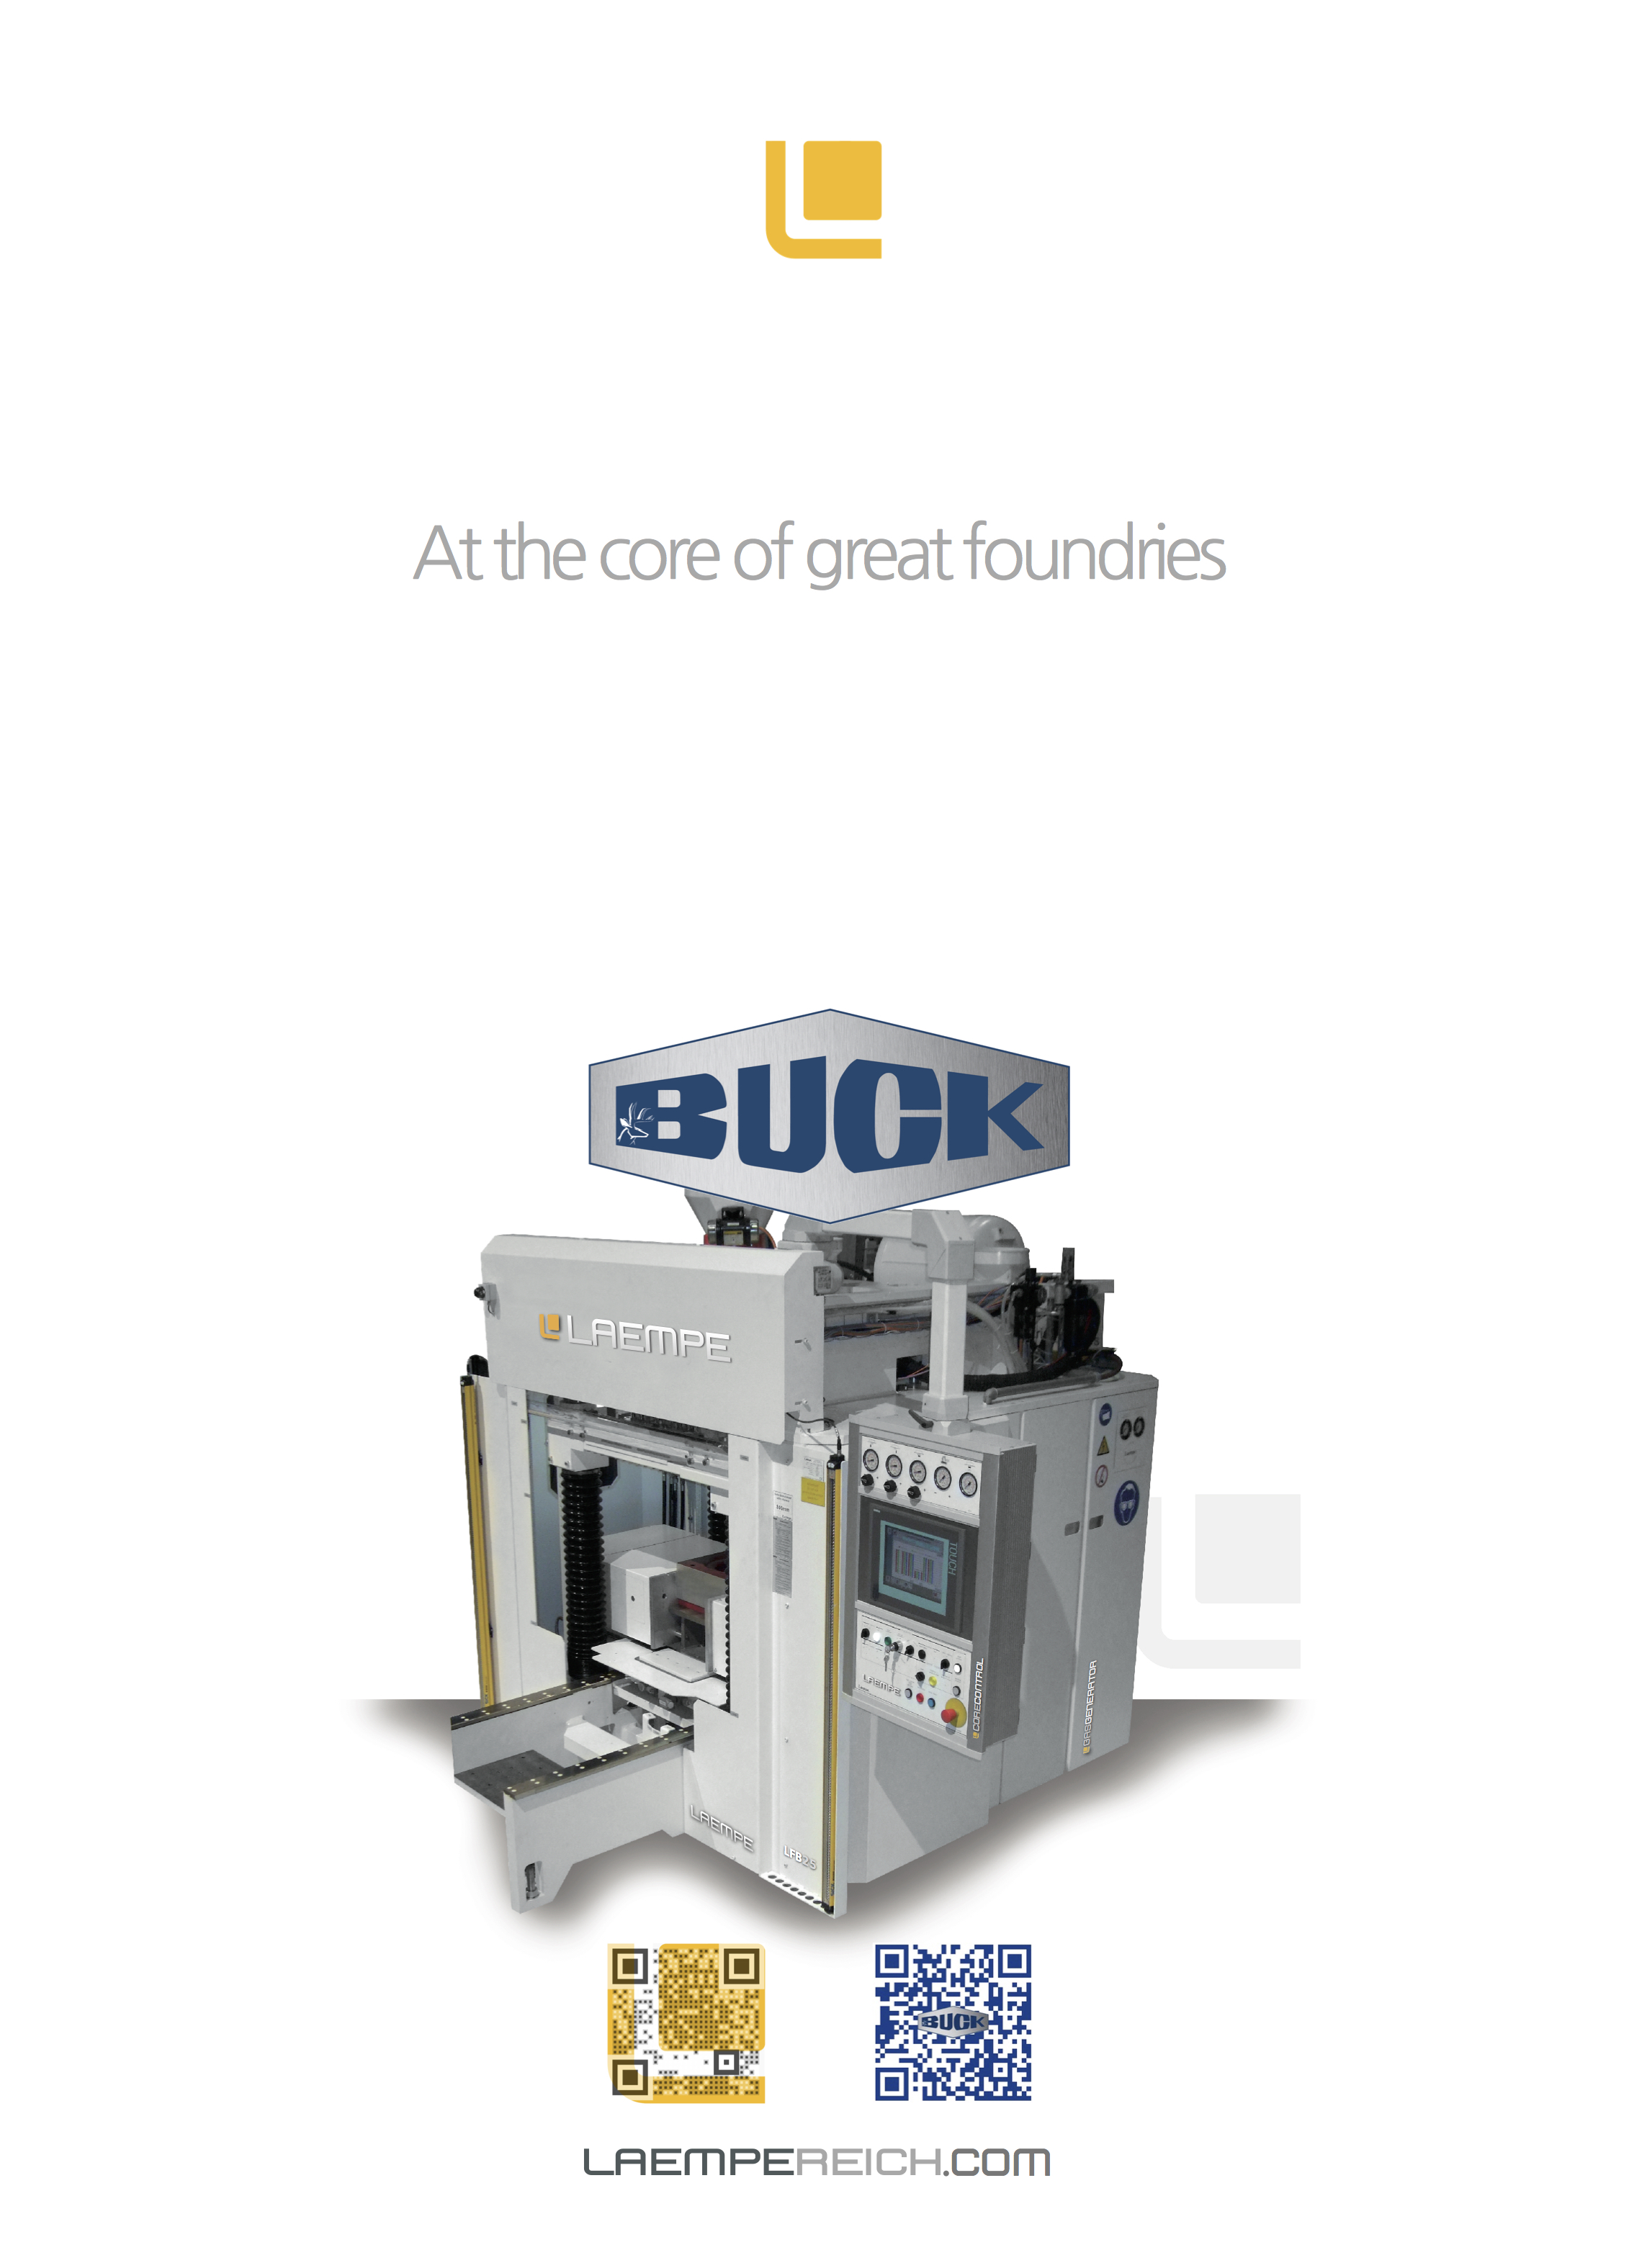 Buck - At the Core of Great Foundries.jpg